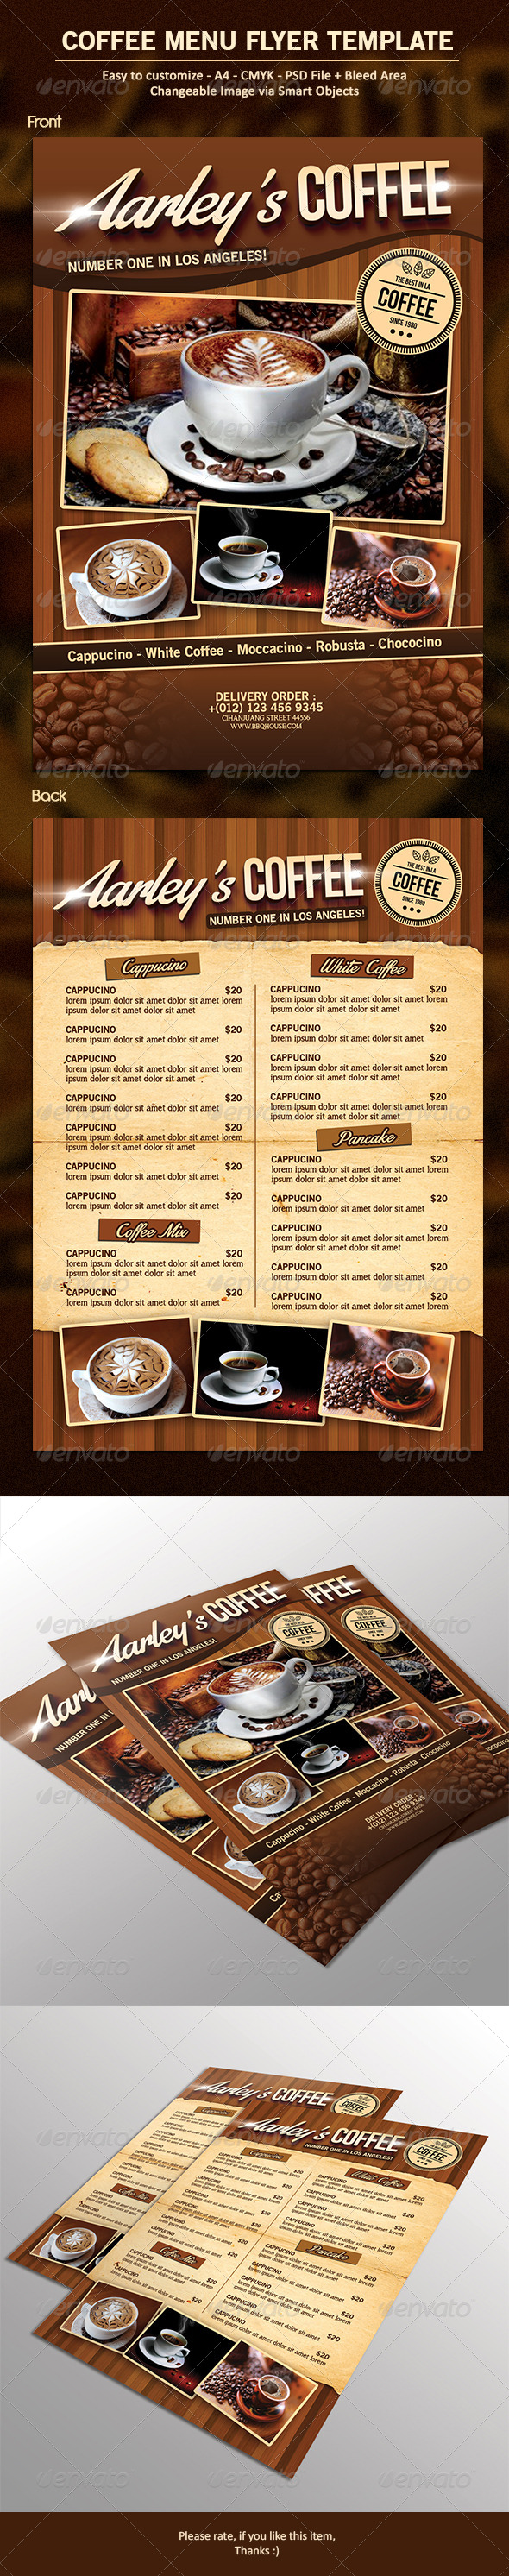 Coffee Menu Flyer - Food Menus Print Templates